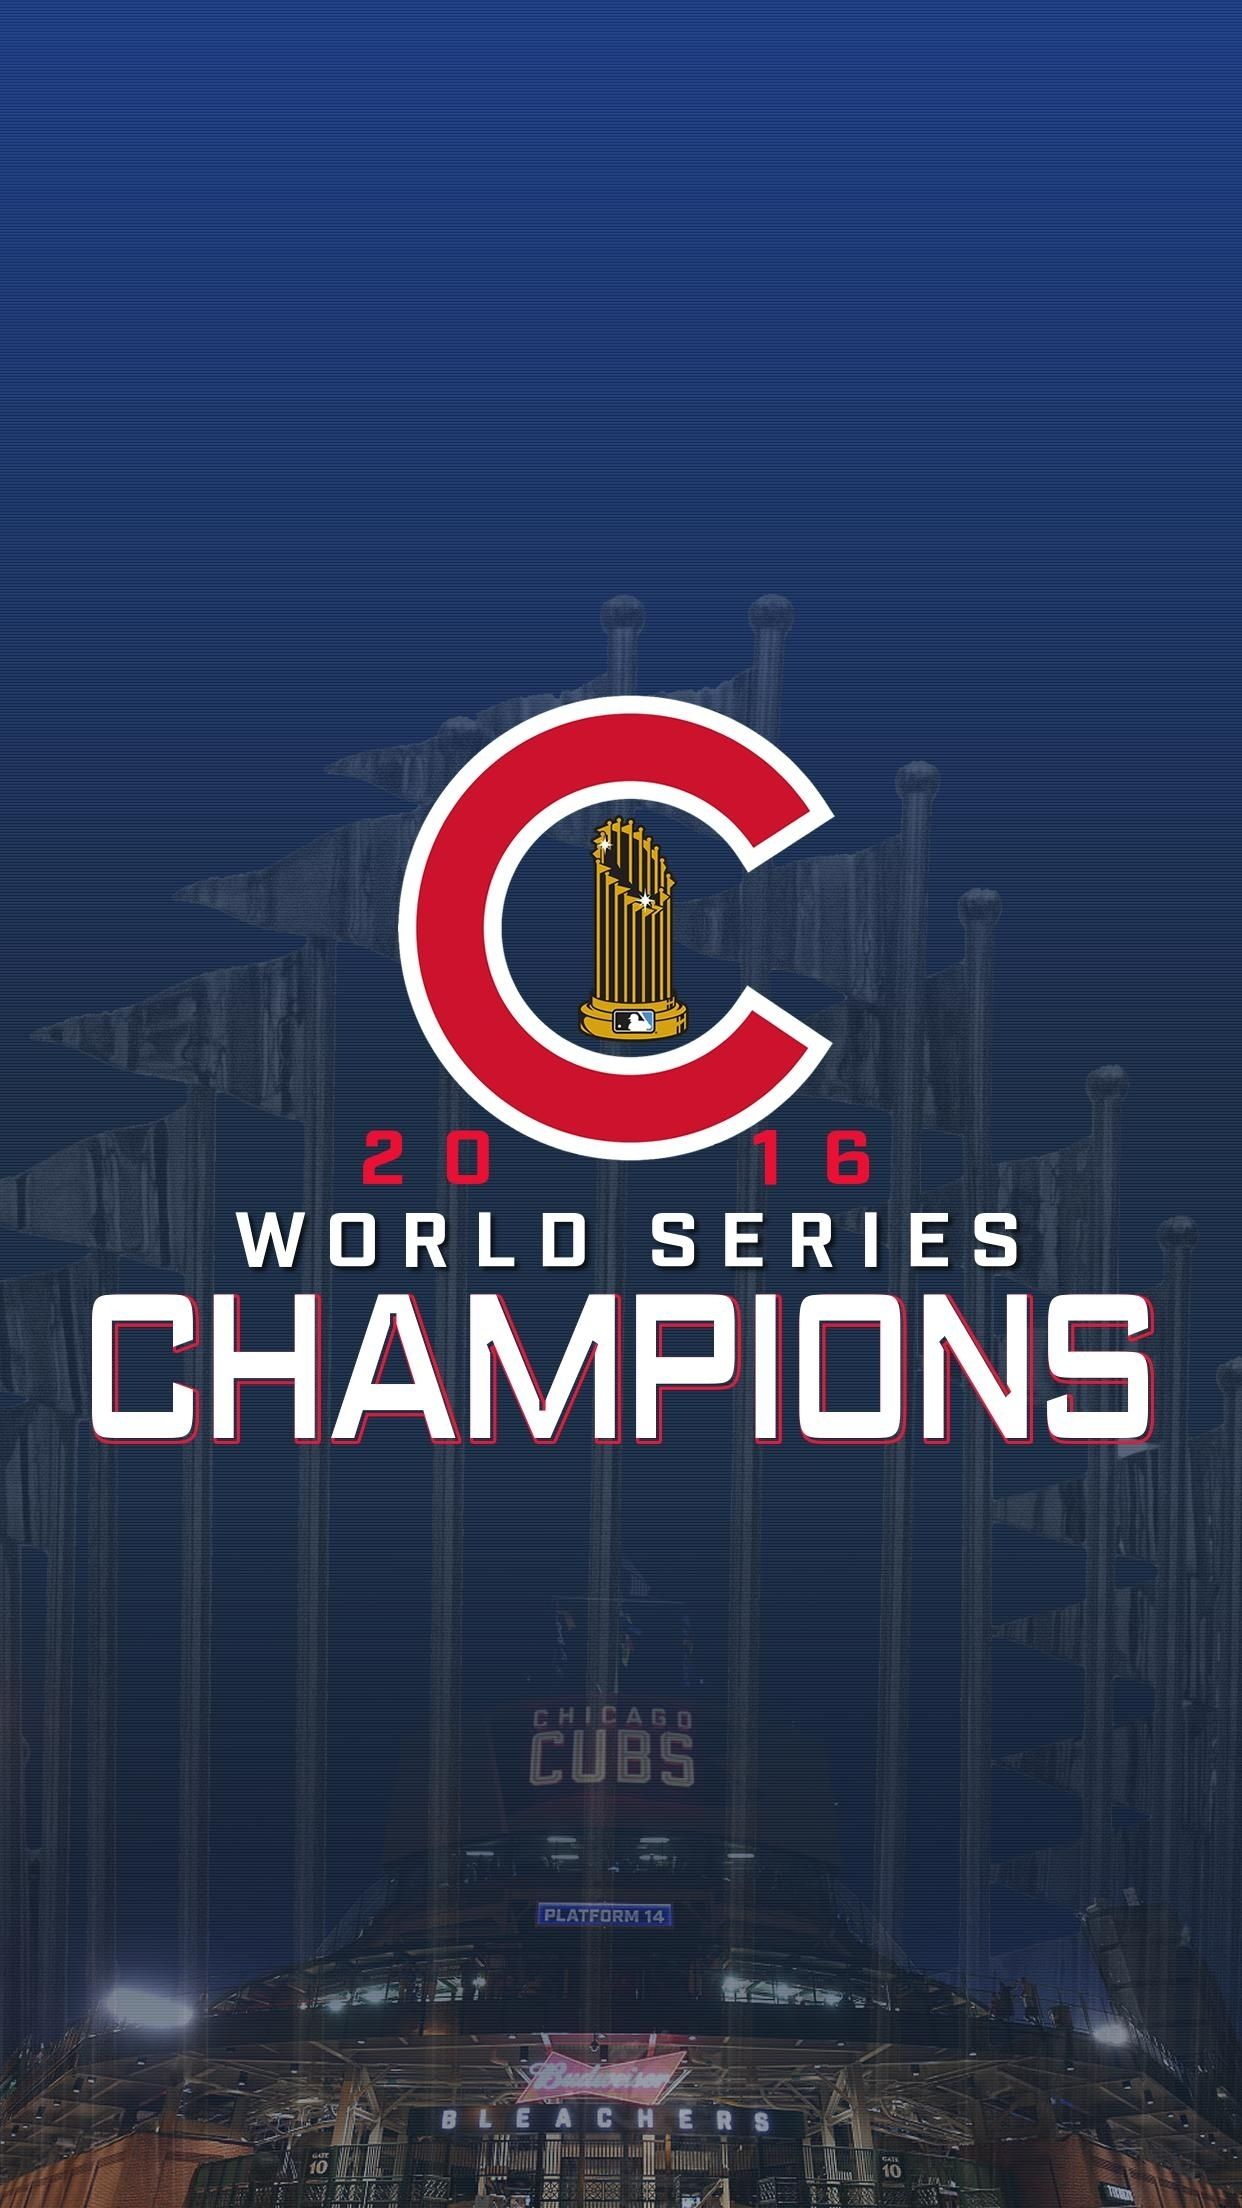 10 Top Chicago Cubs Android Wallpaper Full Hd 1920 1080 For Pc Background Chicago Cubs Wallpaper Chicago Cubs Cubs Wallpaper